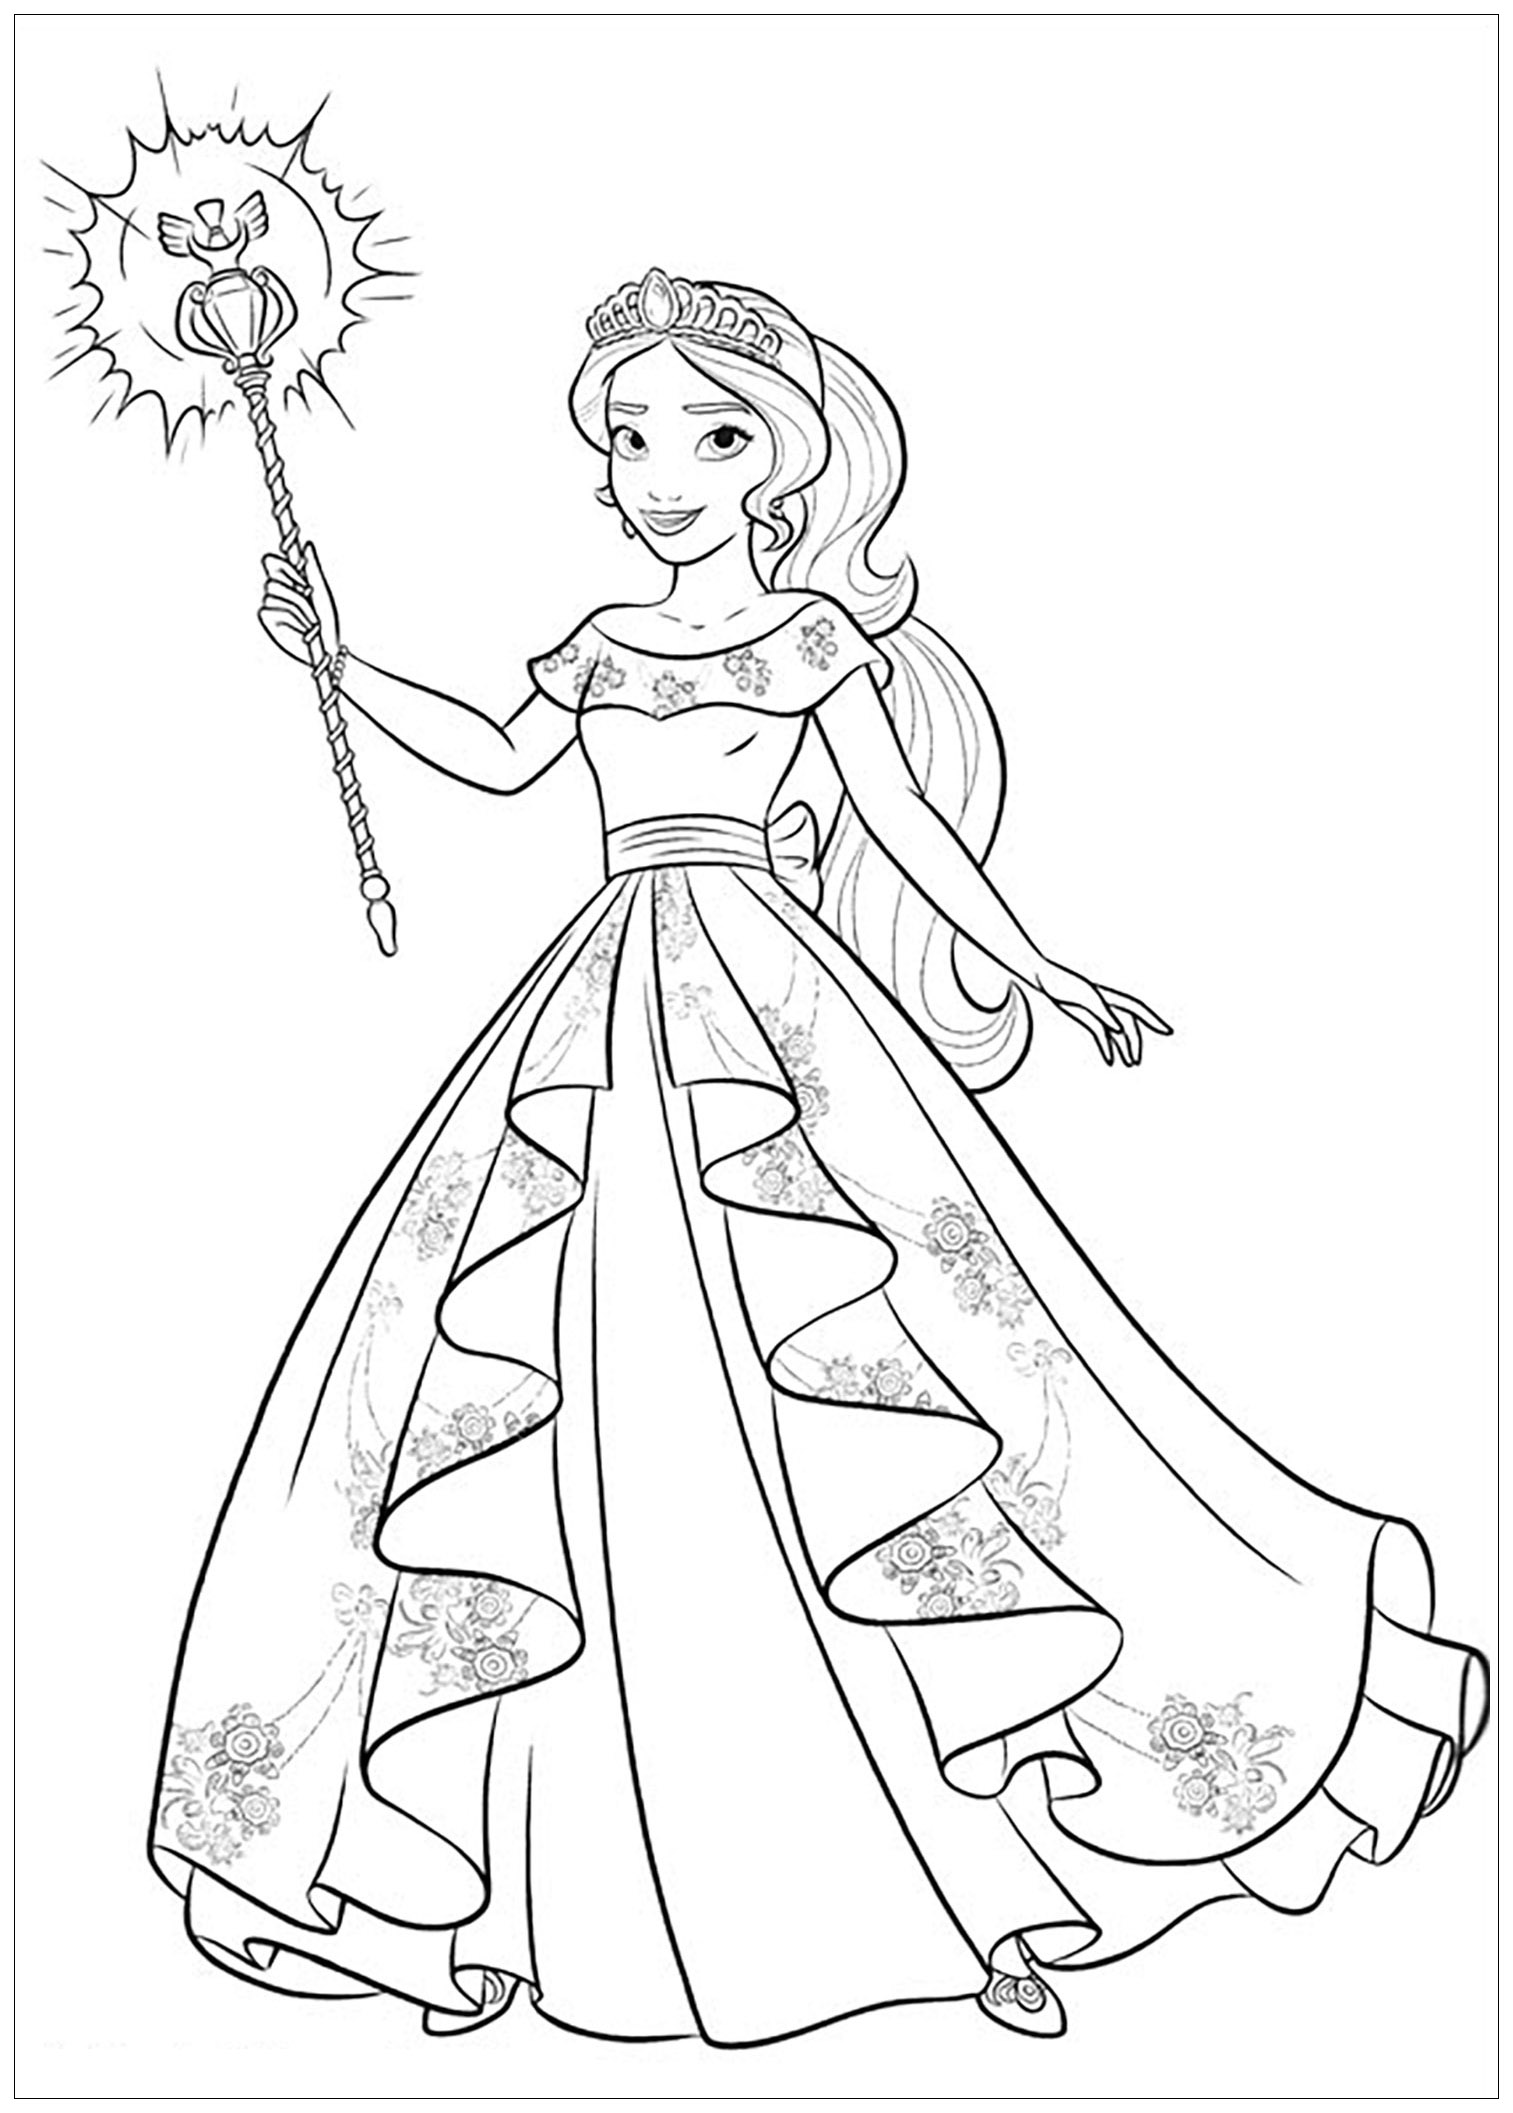 Elena Avalor coloring page with few details for kids